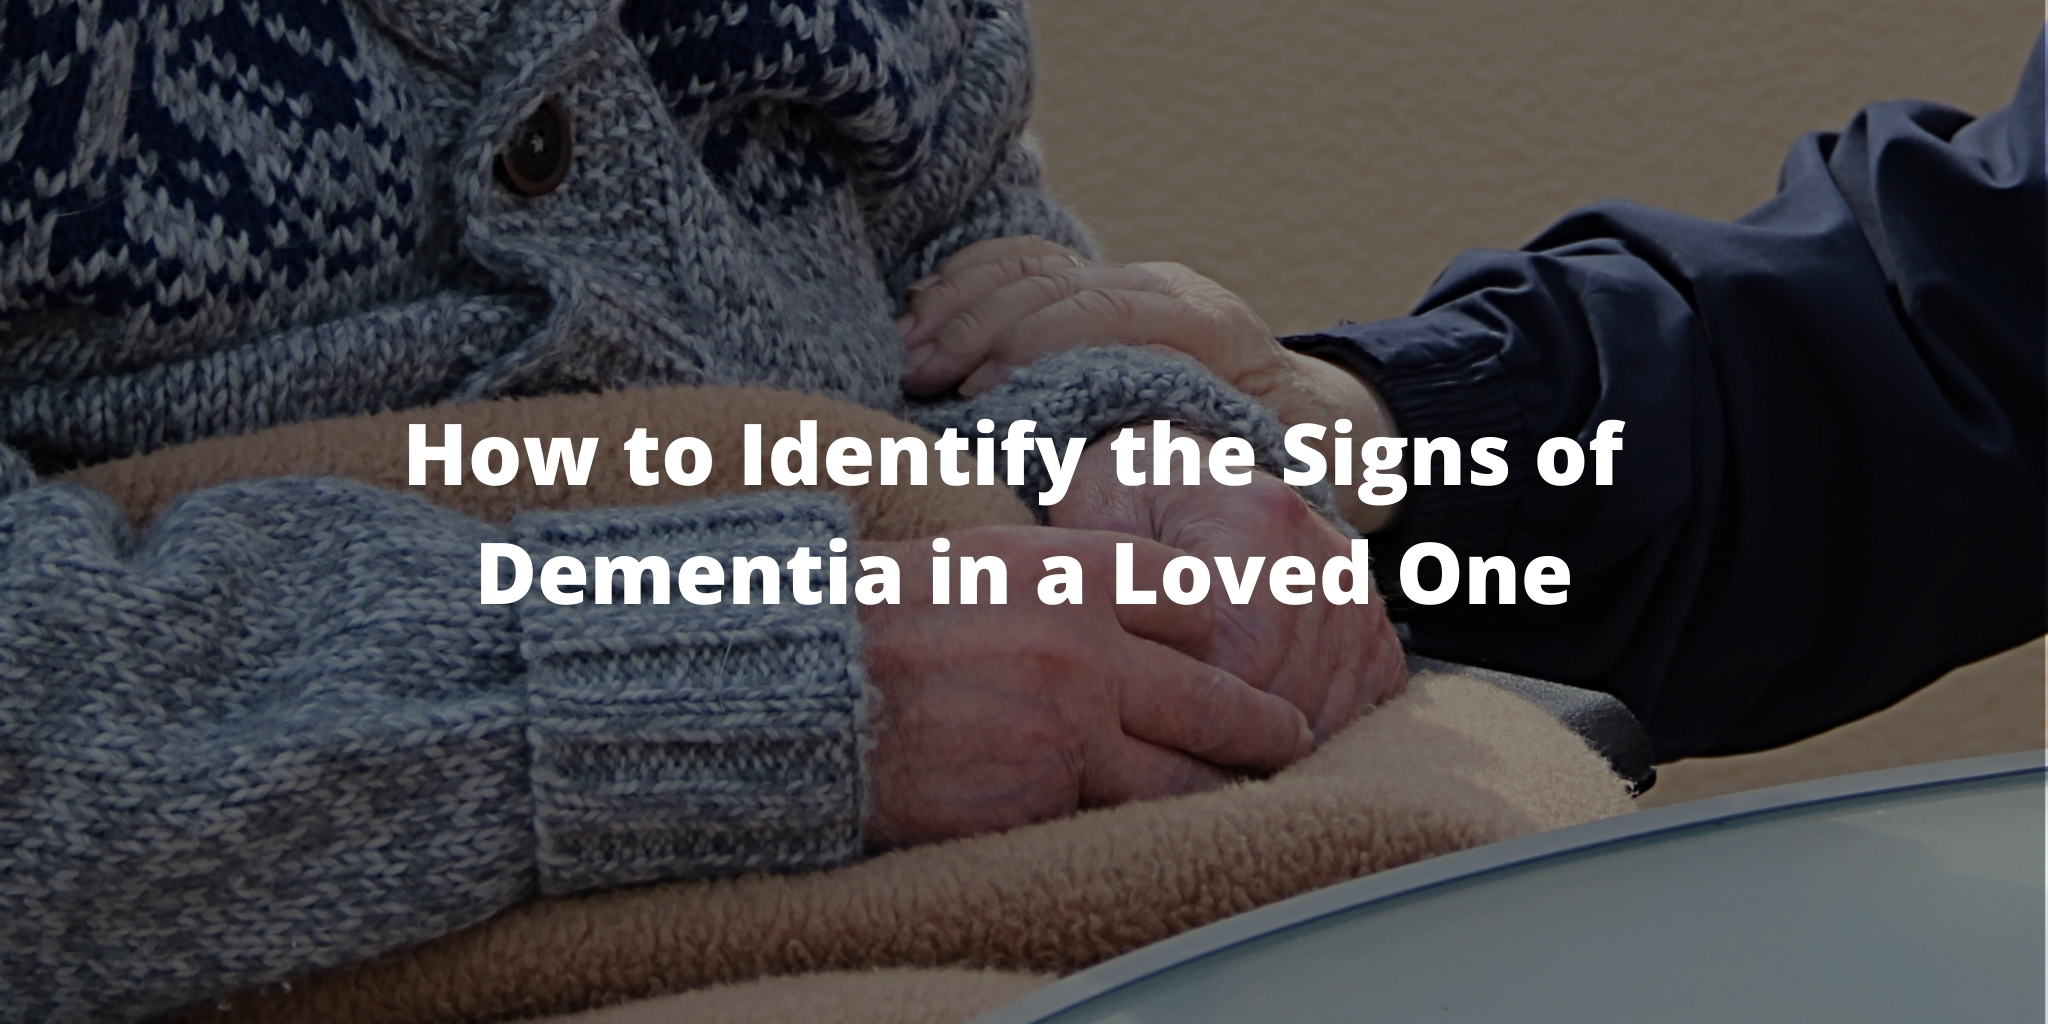 How to Identify the Signs of Dementia in a Loved One